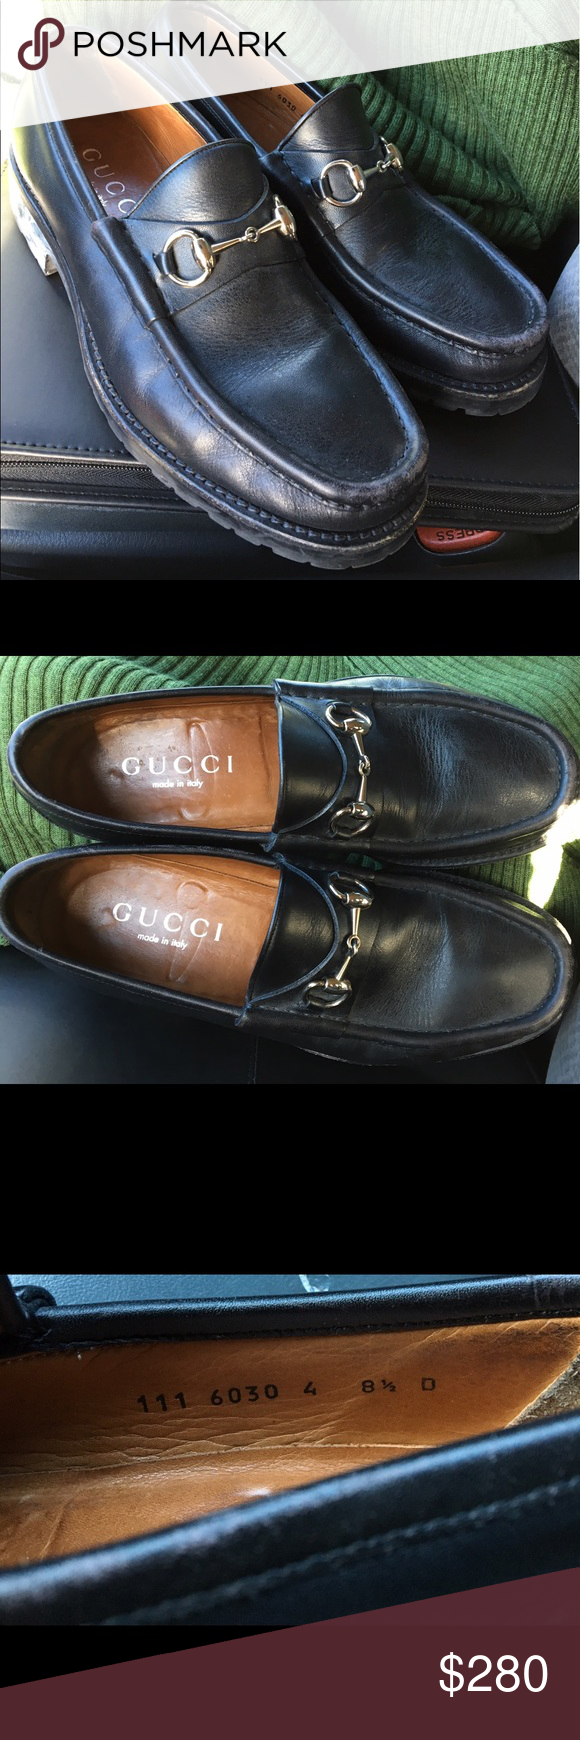 5f6145d5d14 Gucci Italy Mens Black Leather shoes Authentic Gucci Italy Mens Black  Leather Horsebit Buckle Loafers Shoes